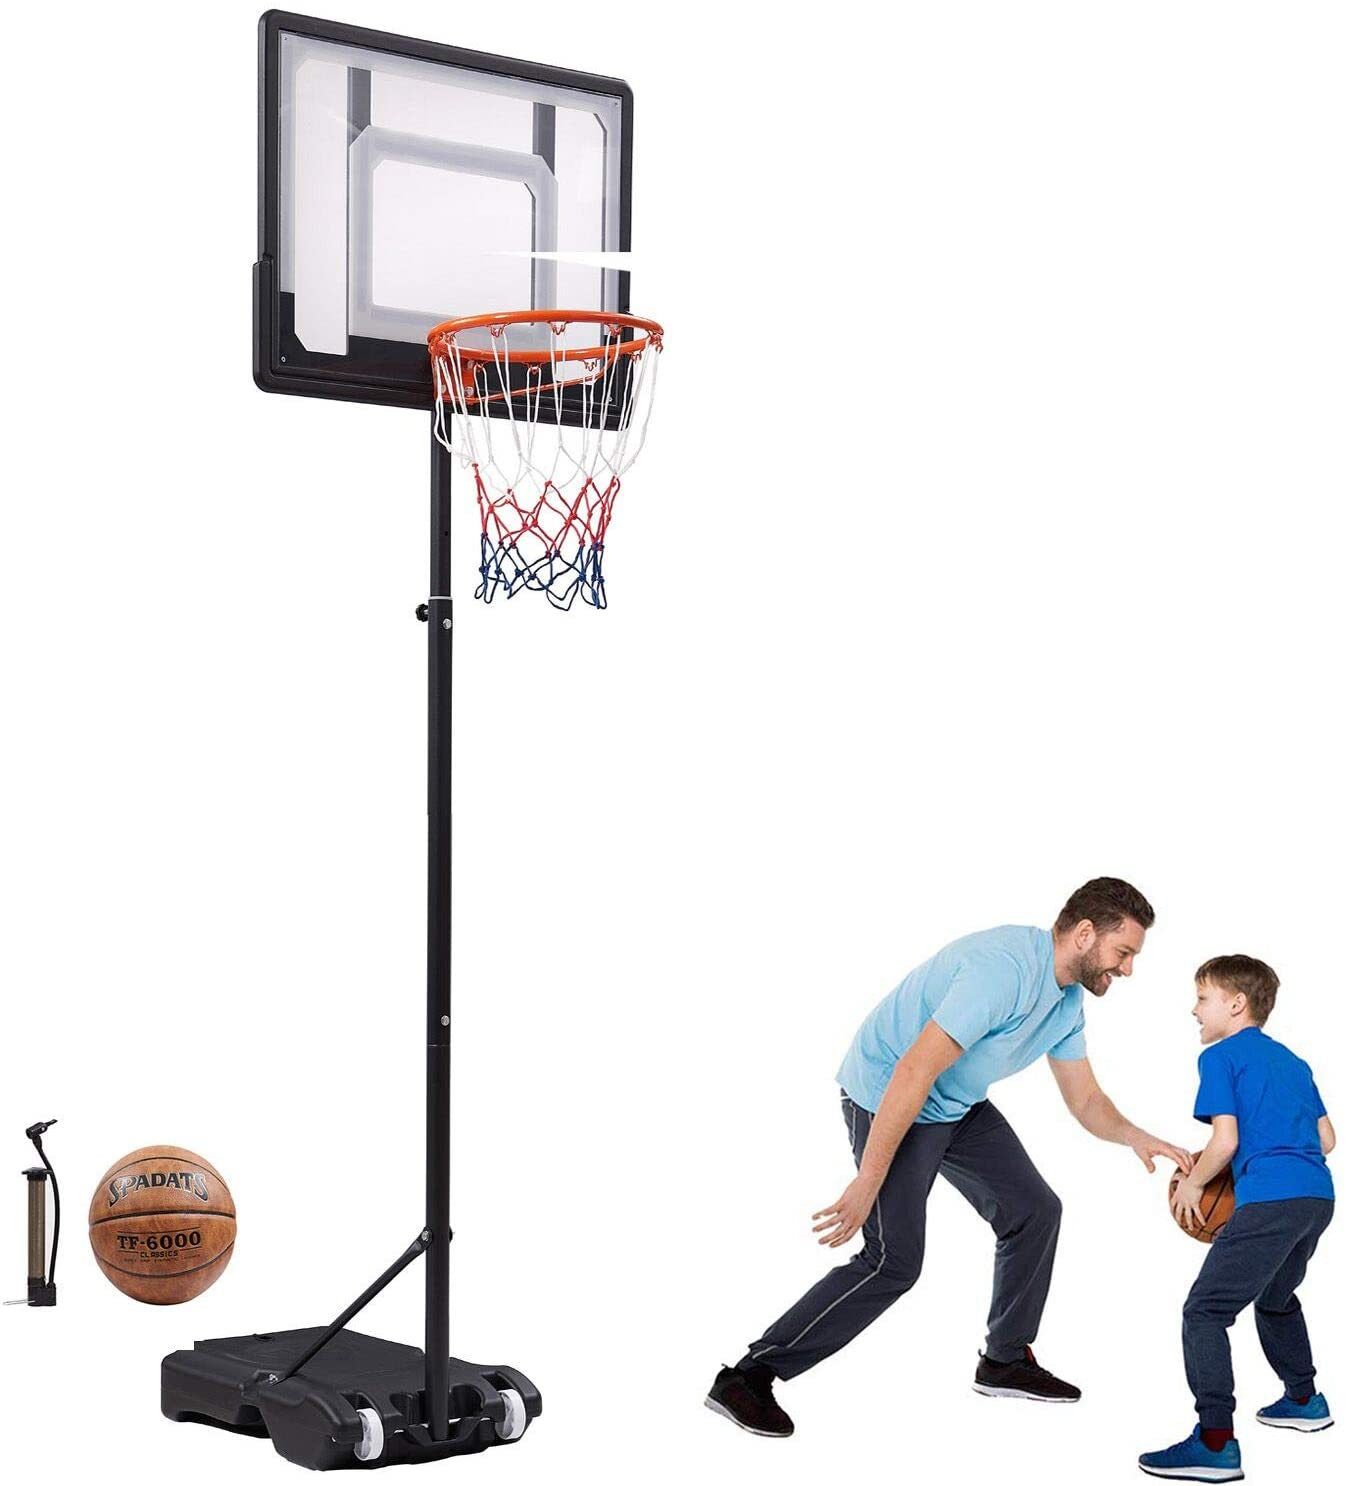 Bodywell Portable Basketball Hoop for Kids Basketball Hoop&Goal Basketball Stand System Backboard Equipment for Youth Teens Height Adjustable 65-82.6in Outdoor Indoor (with Basketball)